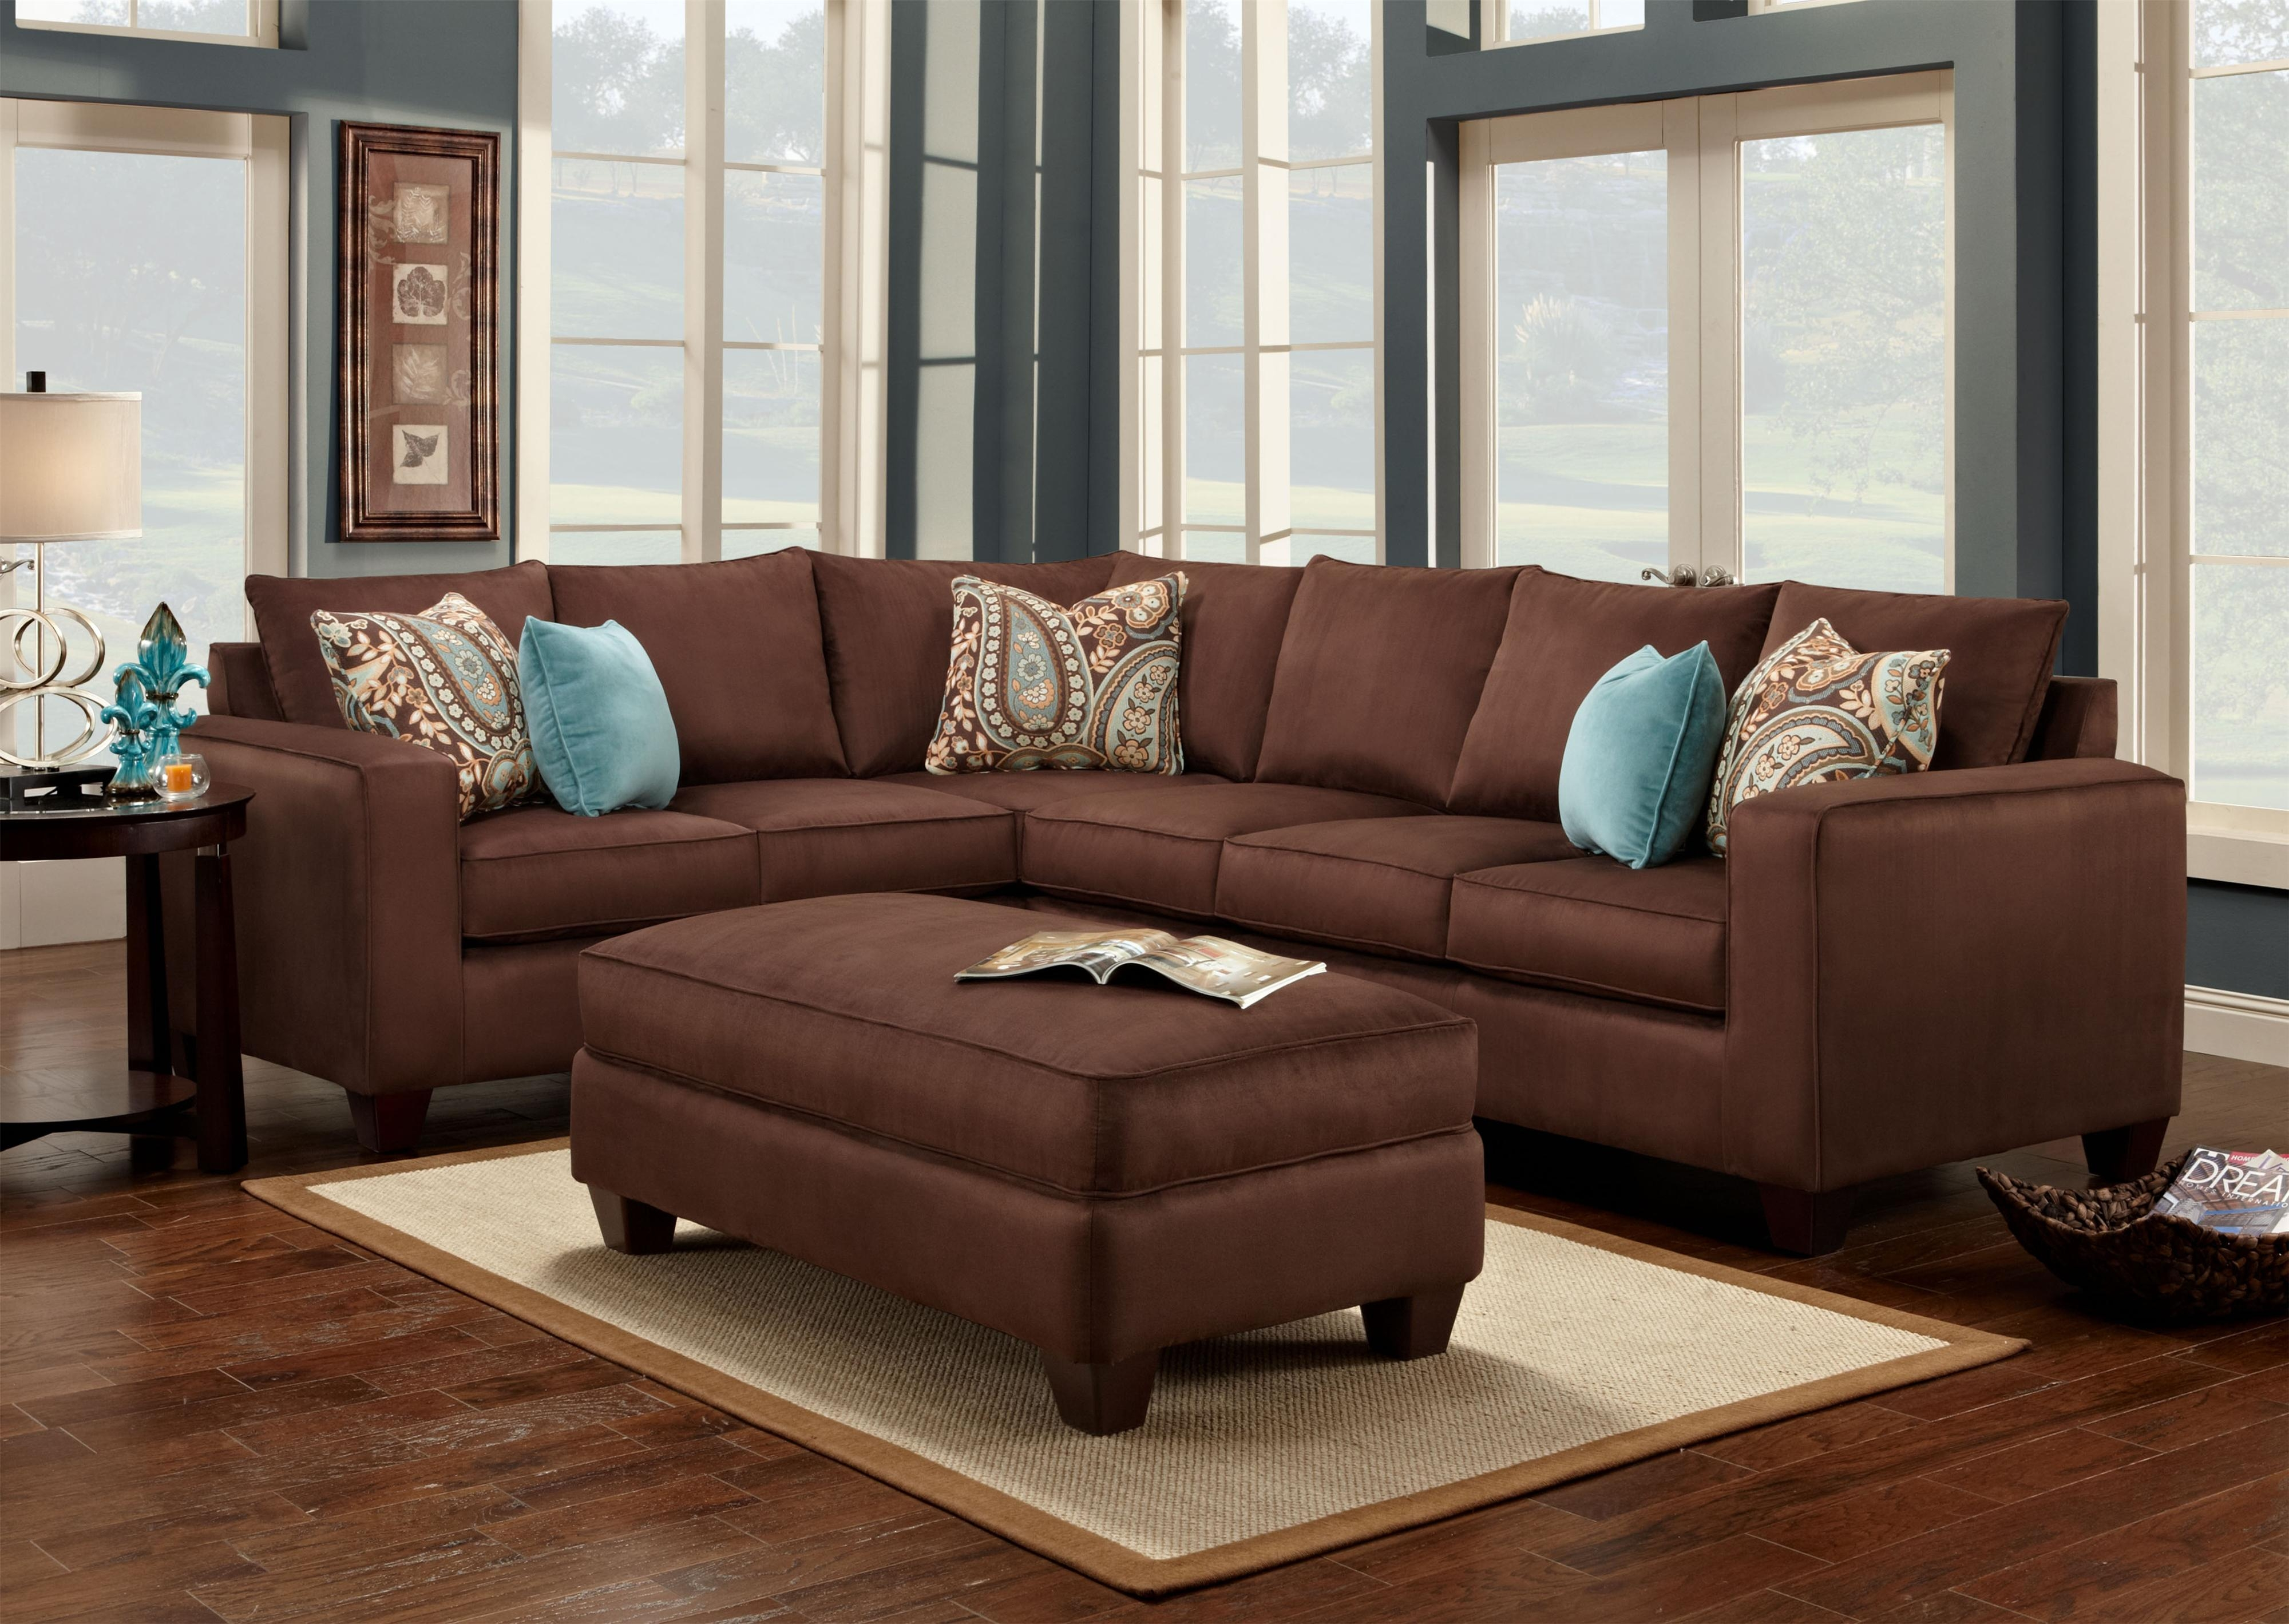 Brown Sectional Sofa Plus Blue Living Room Inspiration Best Blue Within Brown Sofa Chairs (Image 9 of 15)